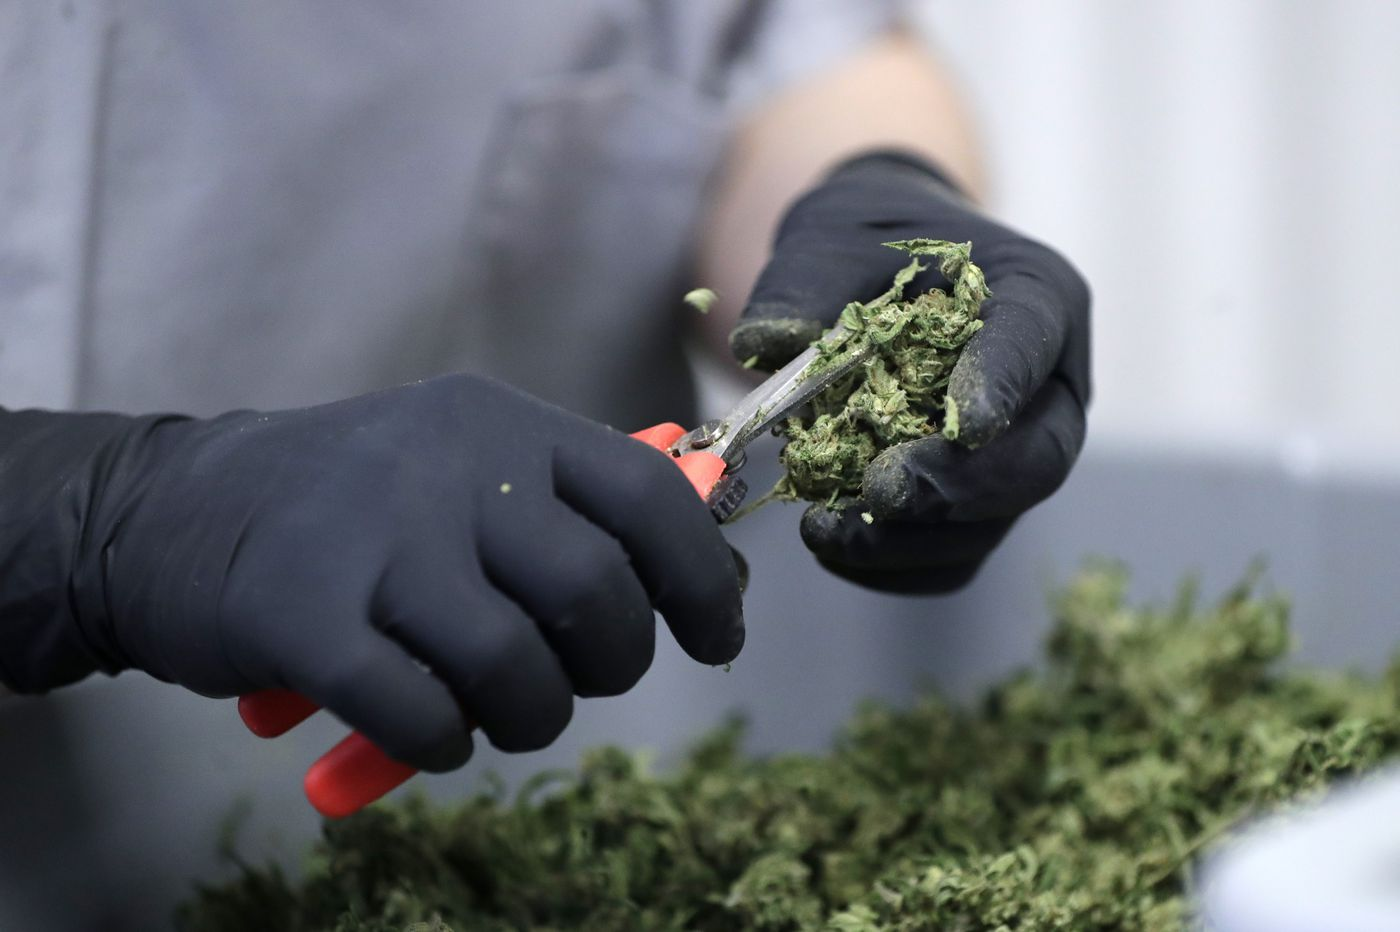 Jefferson Health hits a jackpot with its cannabis bet despite some recent stumbles